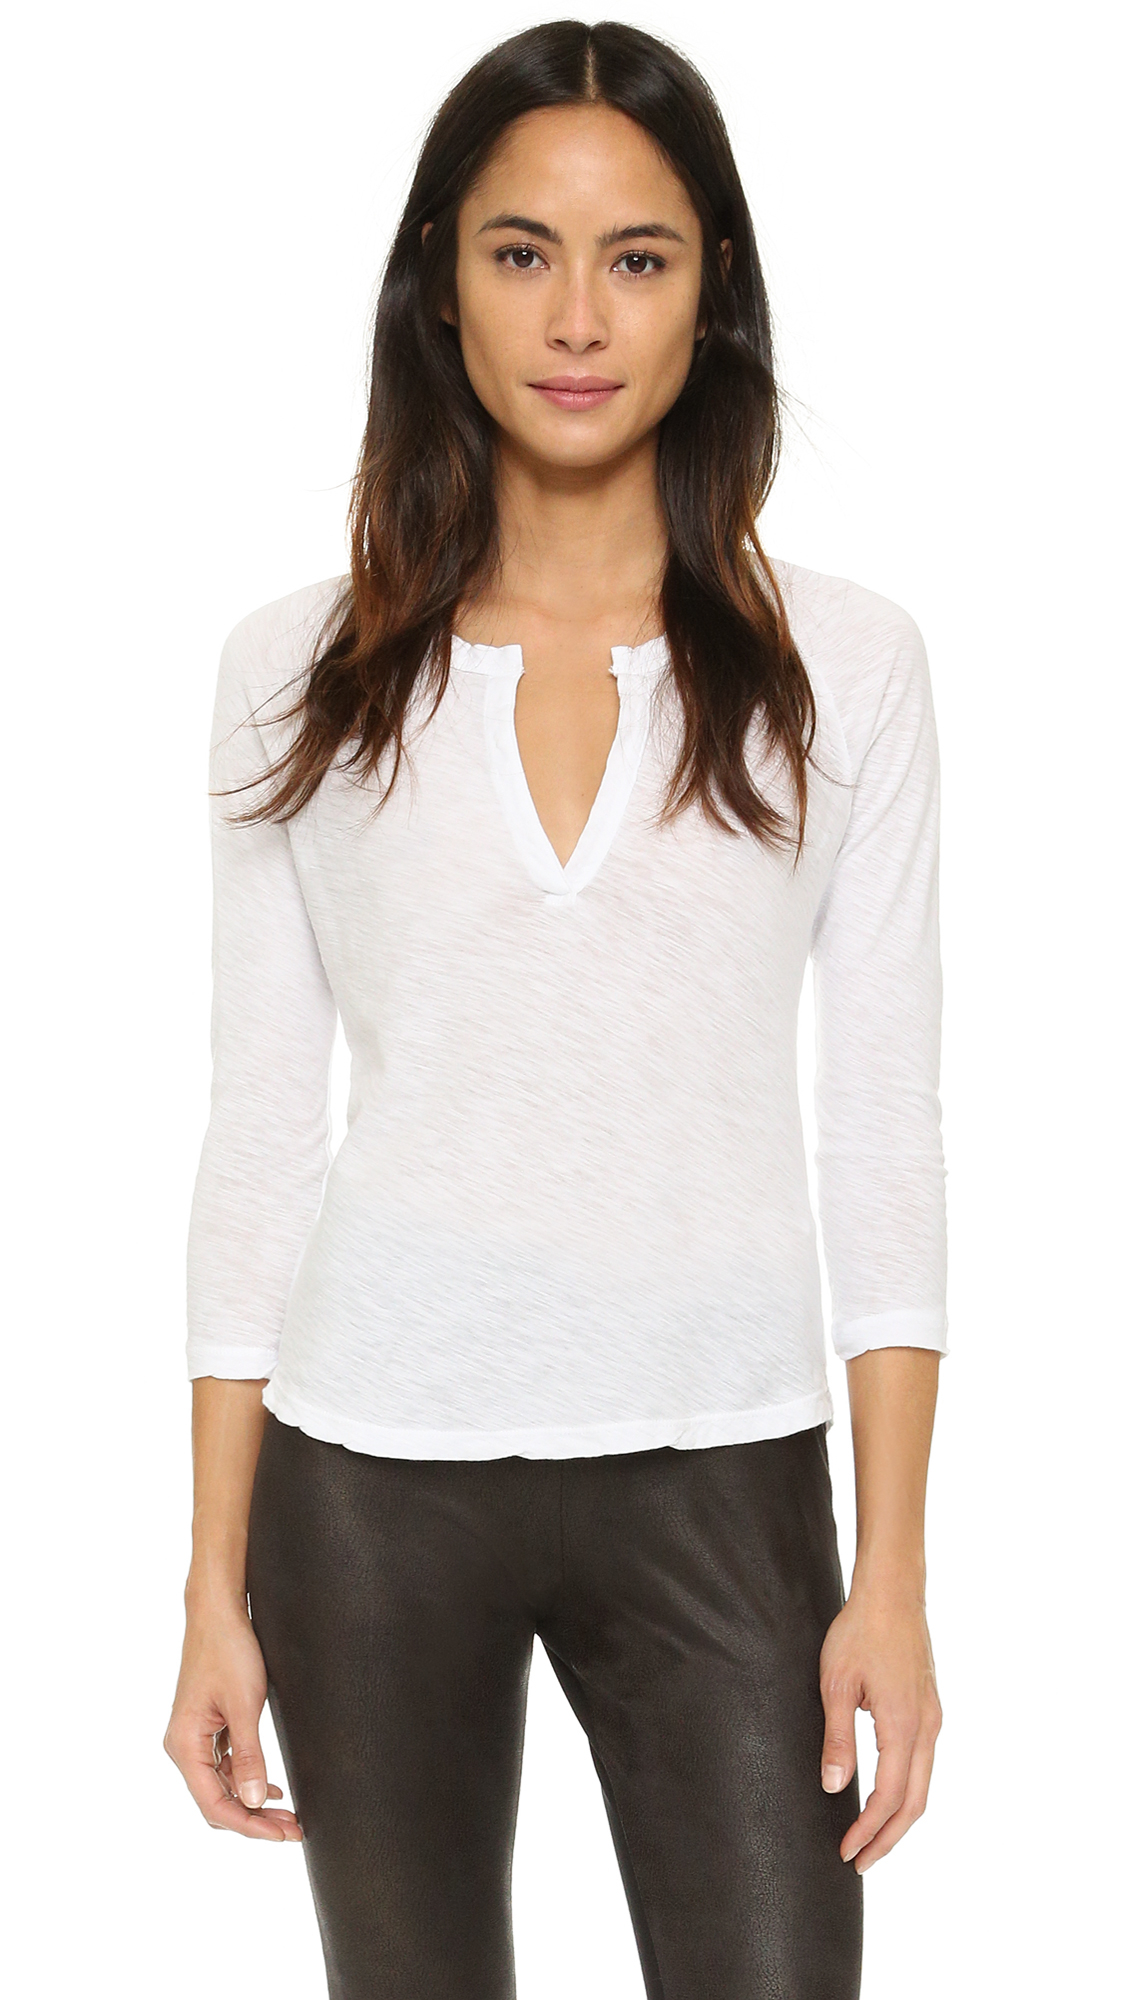 James perse slub open henley tee in white lyst for James perse henley shirt